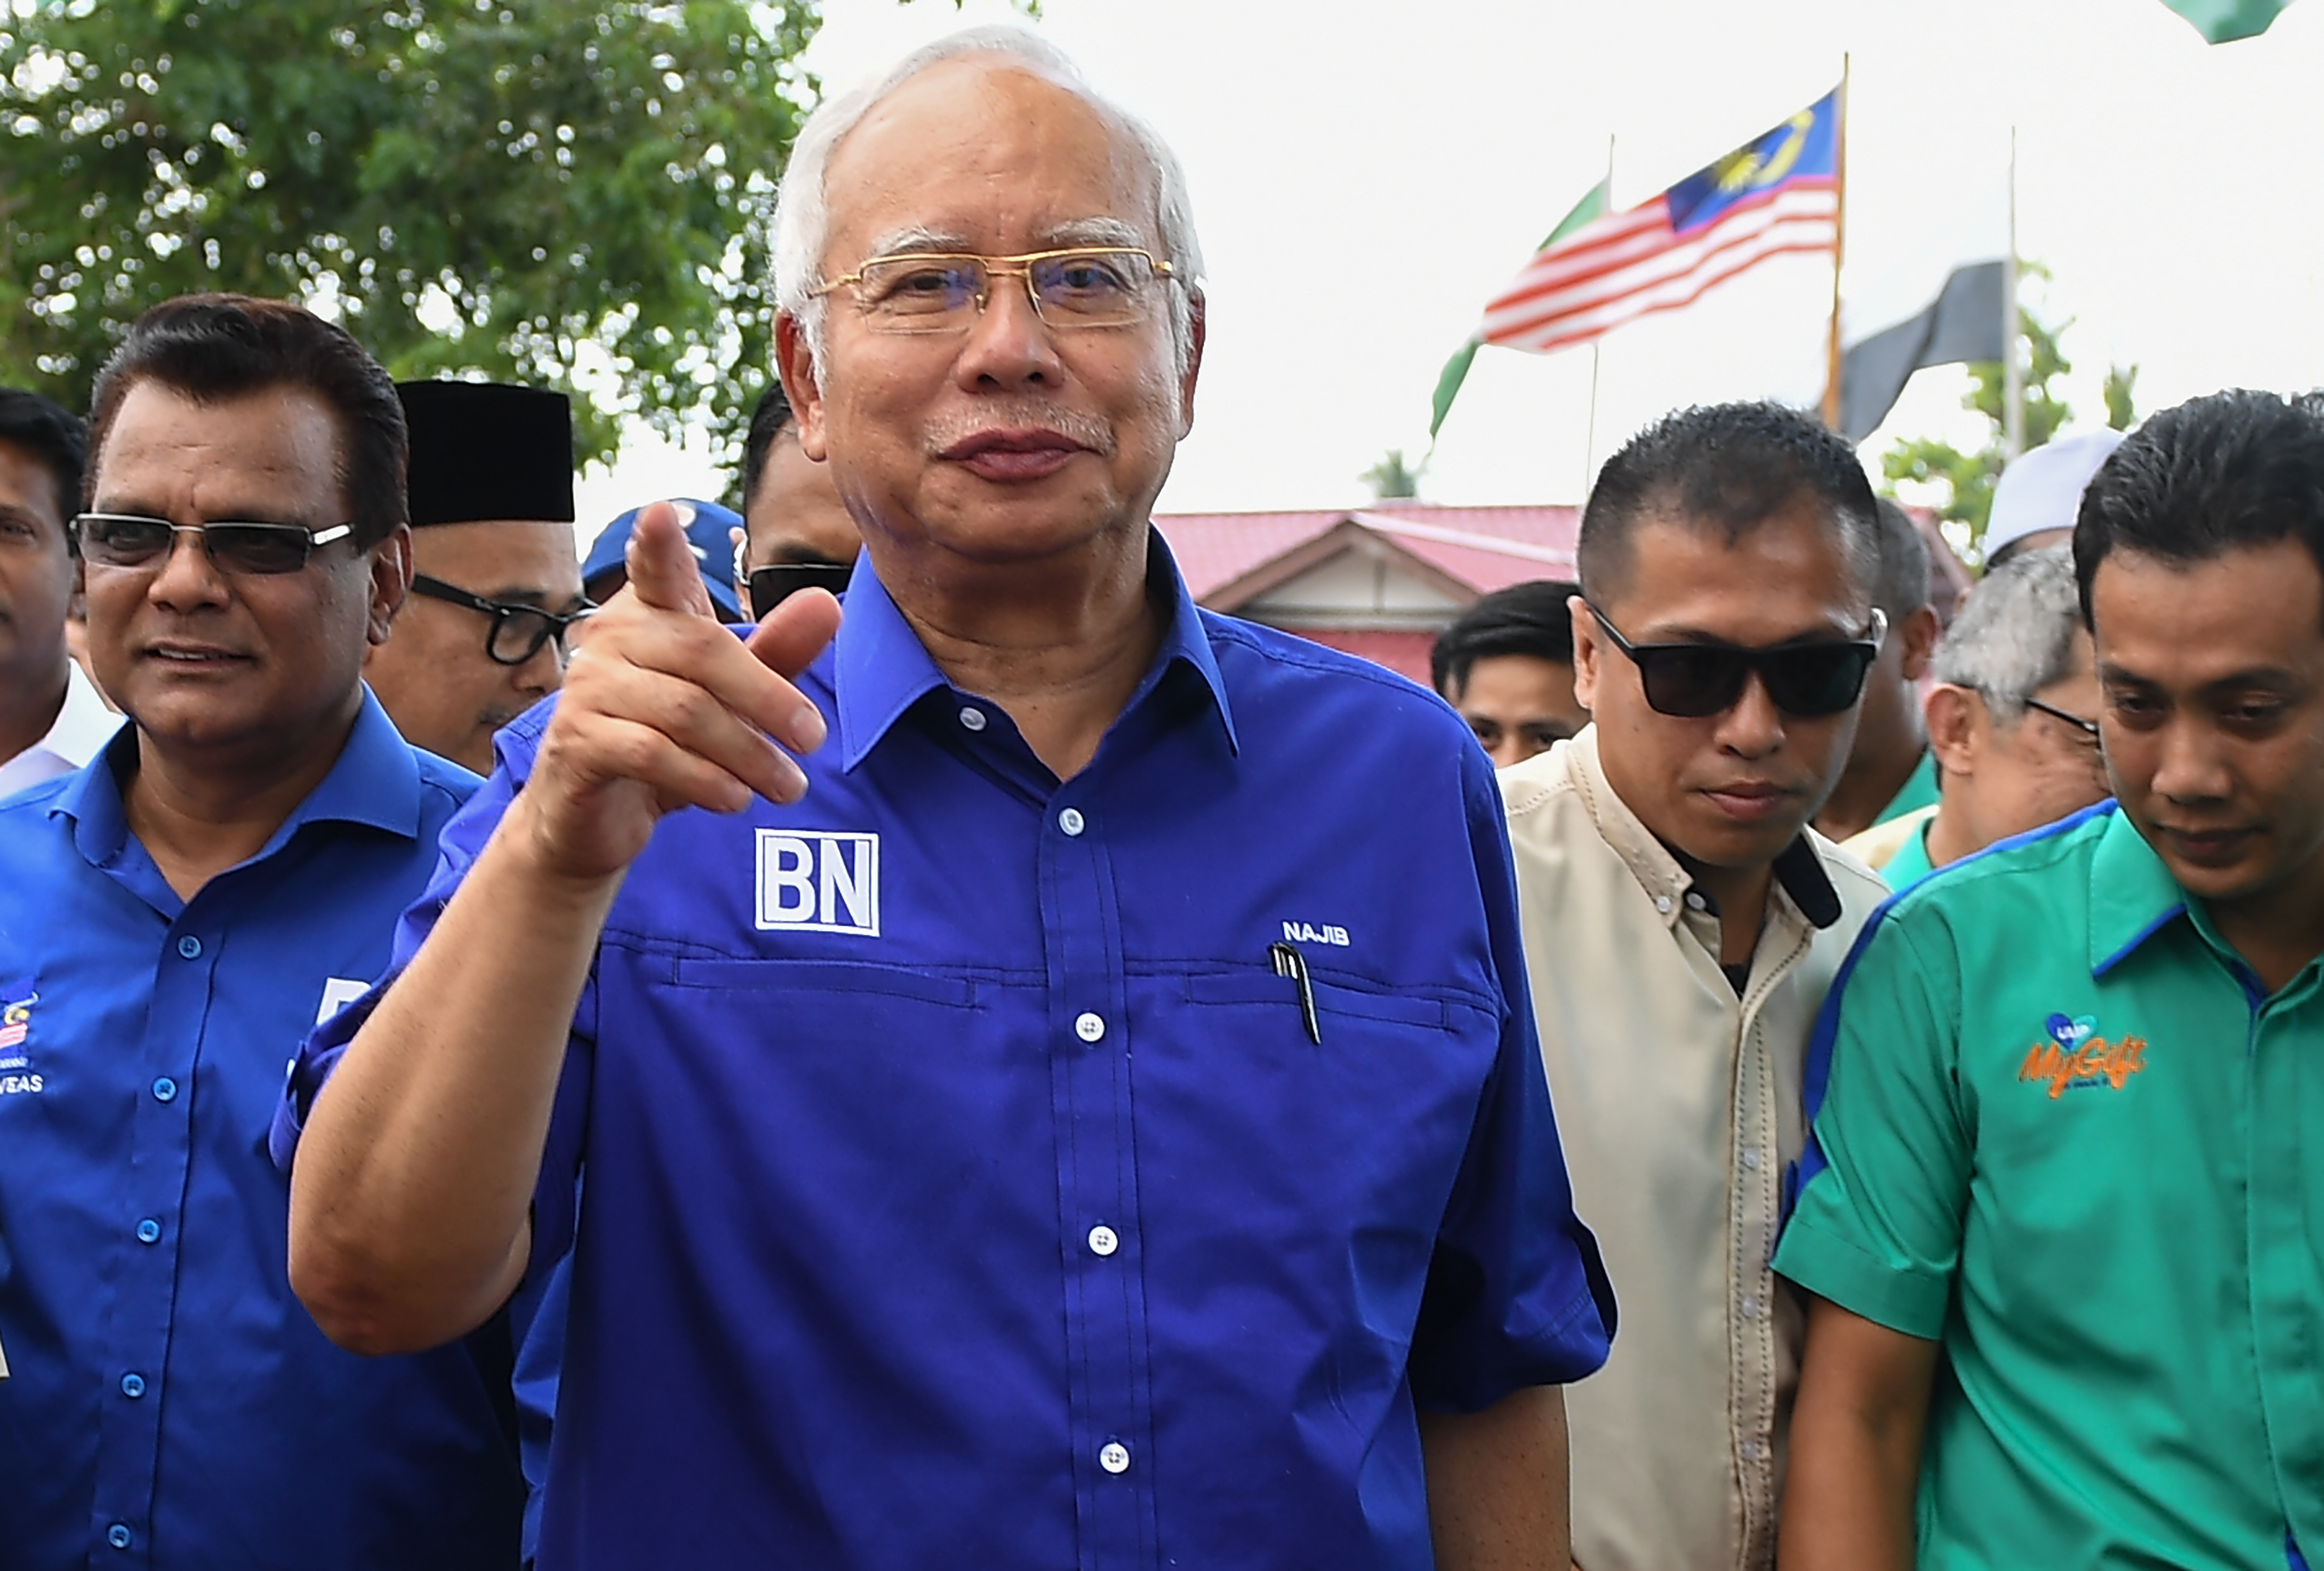 Malaysia's Prime Minister Najib Razak of the ruling coalition party Barisan Nasional arrives during a campaign event ahead of the upcoming 14th general election in Pekan, Pahang on May 8, 2018.